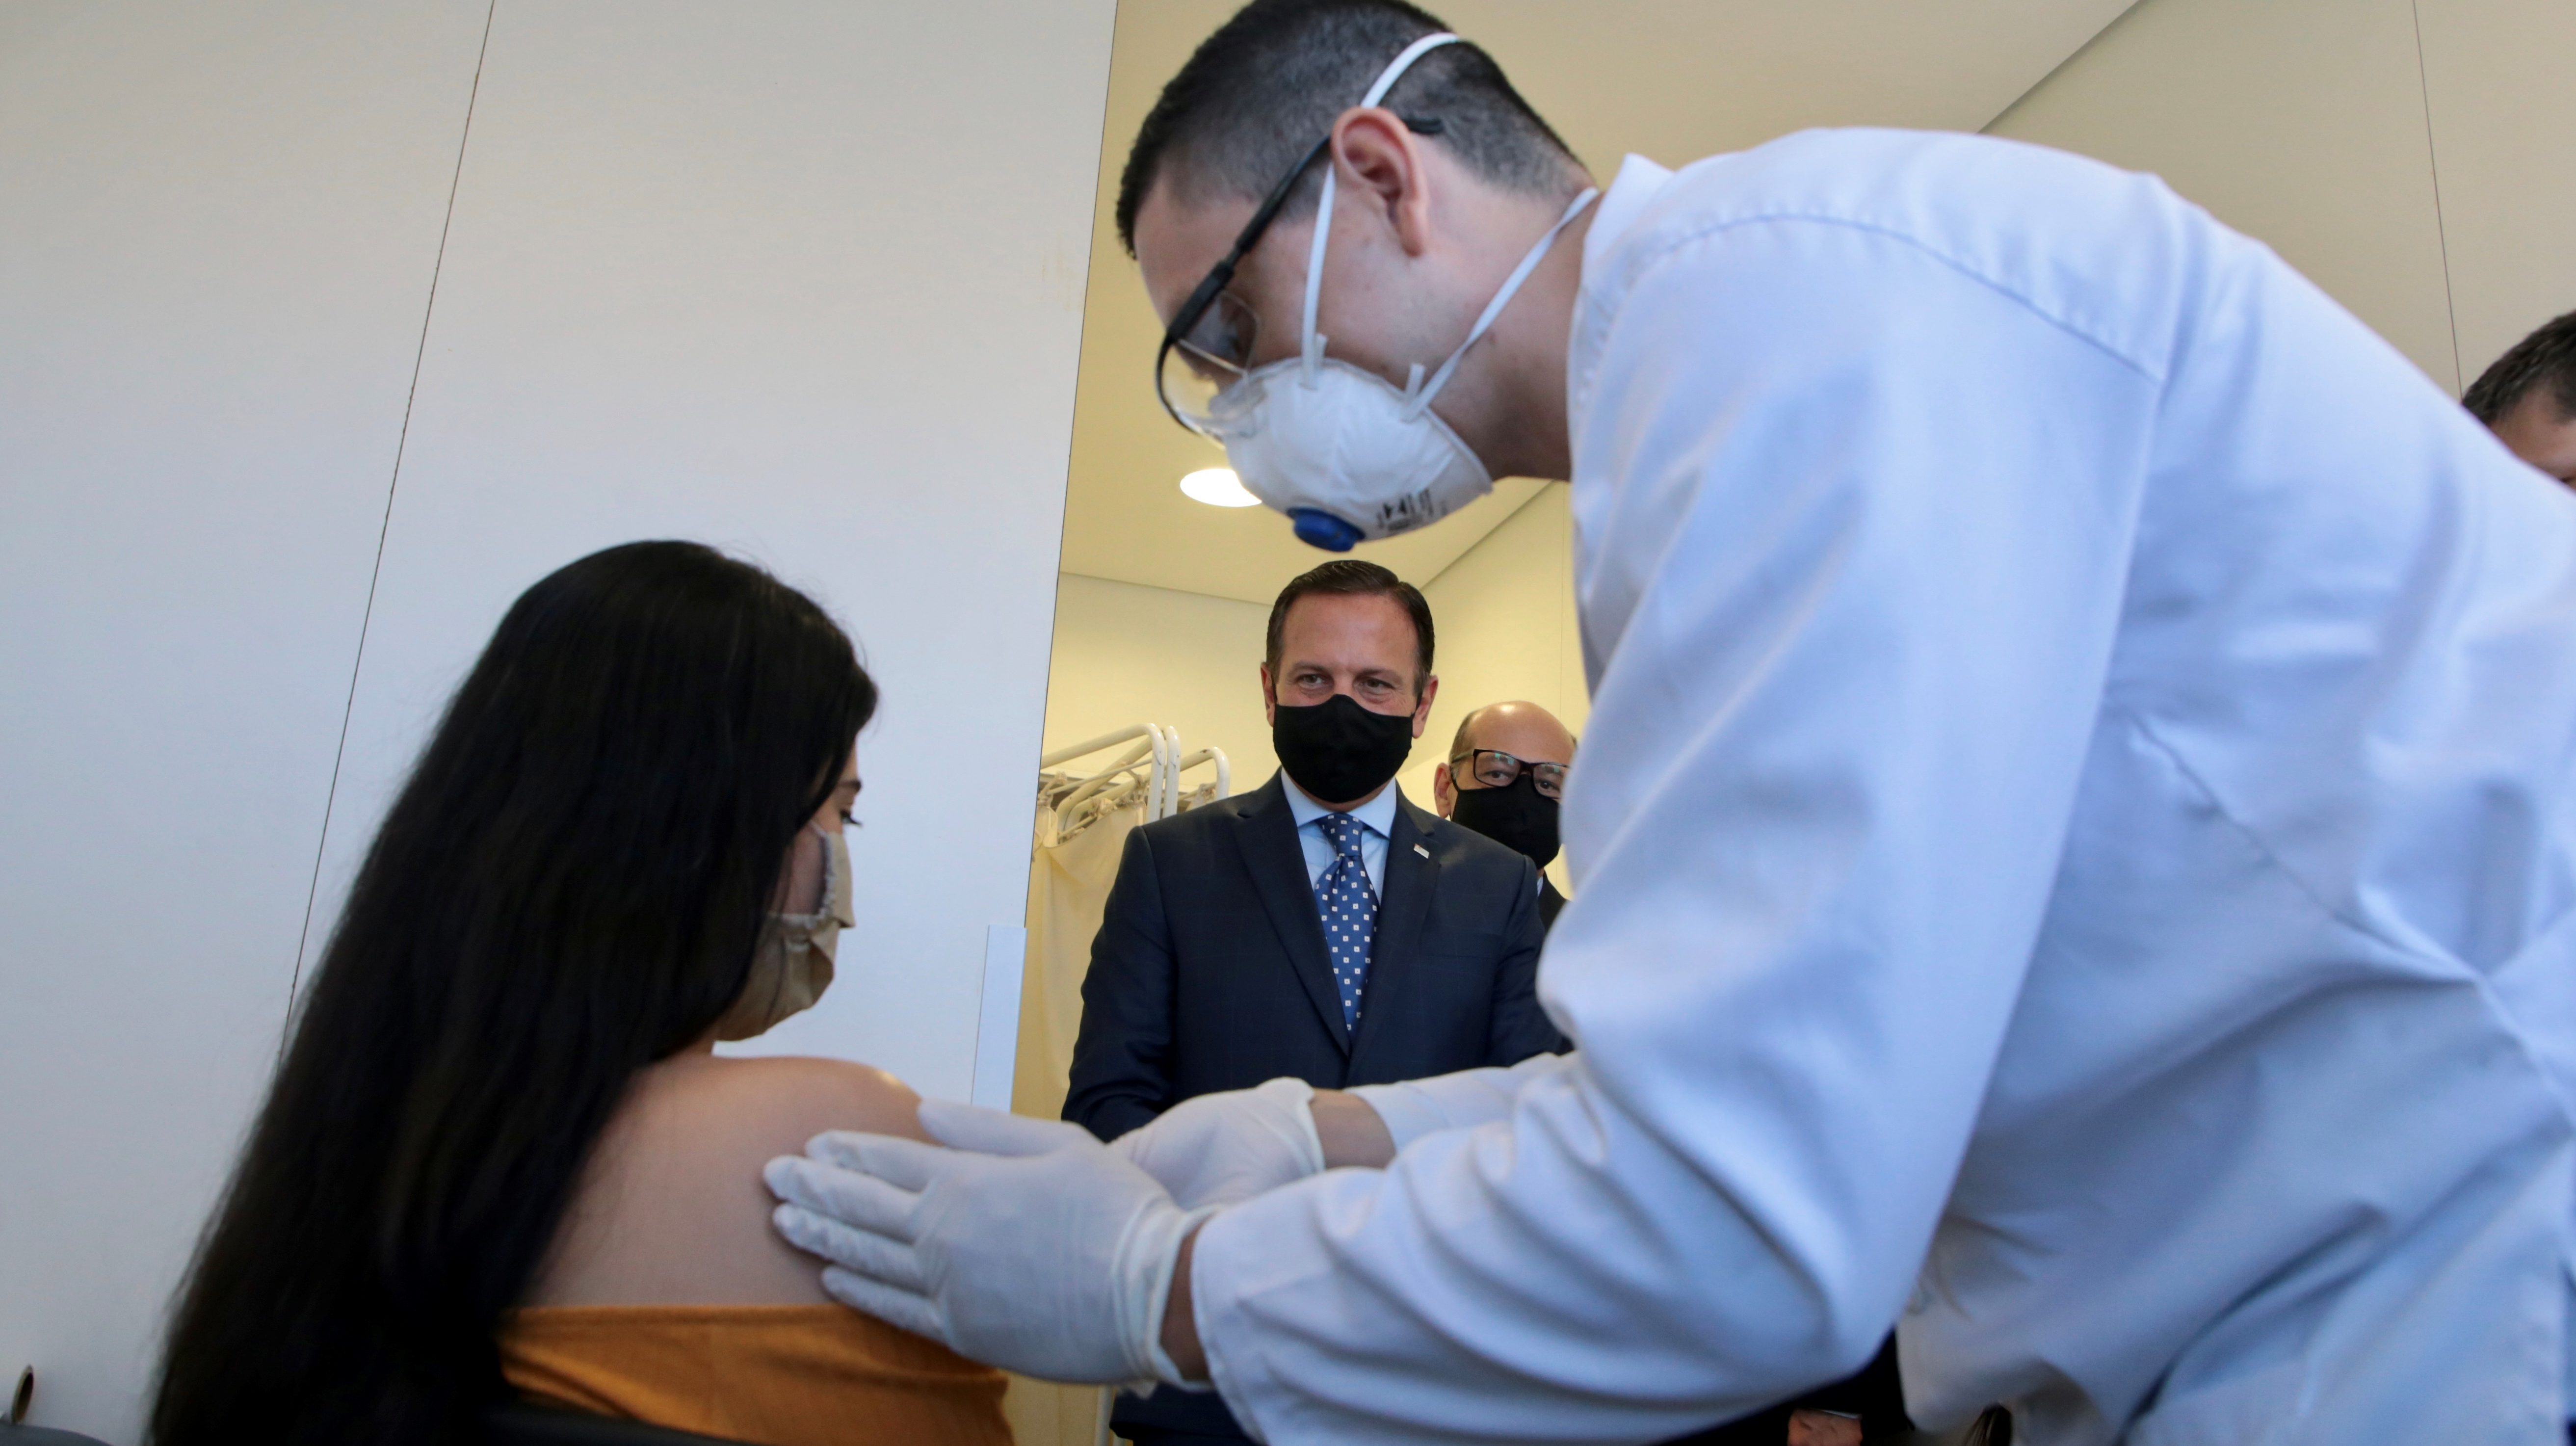 A volunteer receives the first test of the China's Sinovac coronavirus potential vaccine from a healthcare worker as Sao Paulo's Governor Joao Doria looks on amid the coronavirus disease (COVID-19) outbreak, at Hospital das Clinicas, in Sao Paulo, Brazil July 21, 2020.